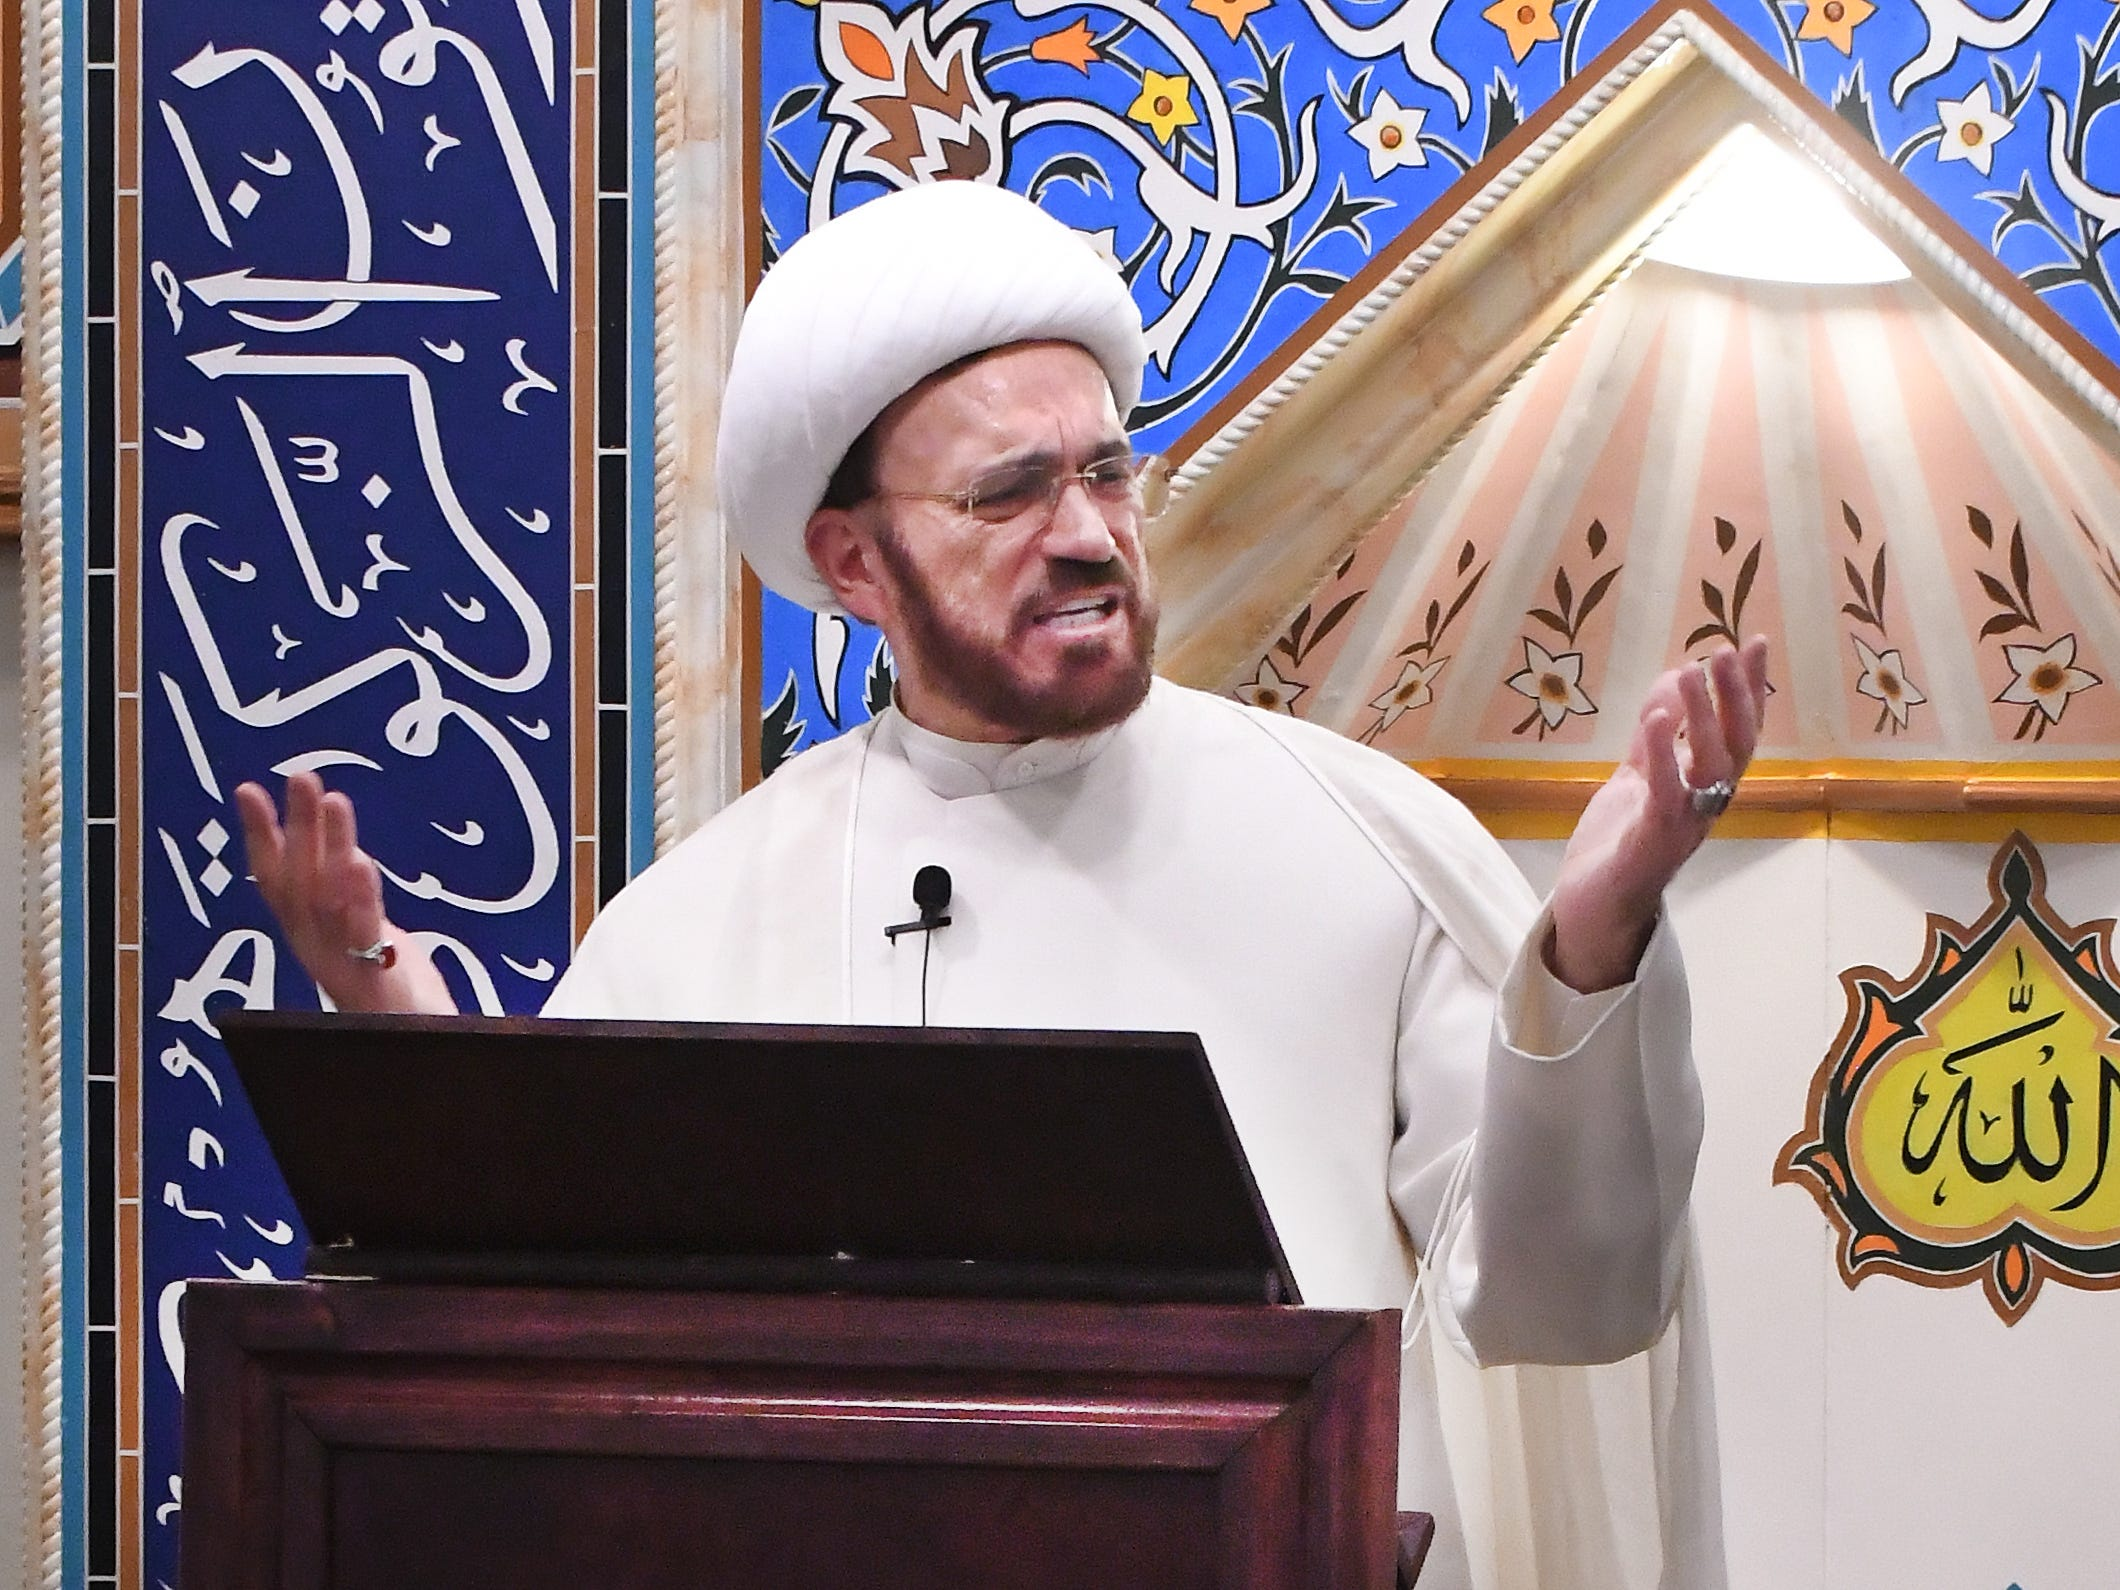 Imam Mohammad Ali Elahi addresses the New Zealand mosque massacre during a prayer service at the Islamic House of Wisdom in Dearborn Heights  Friday.